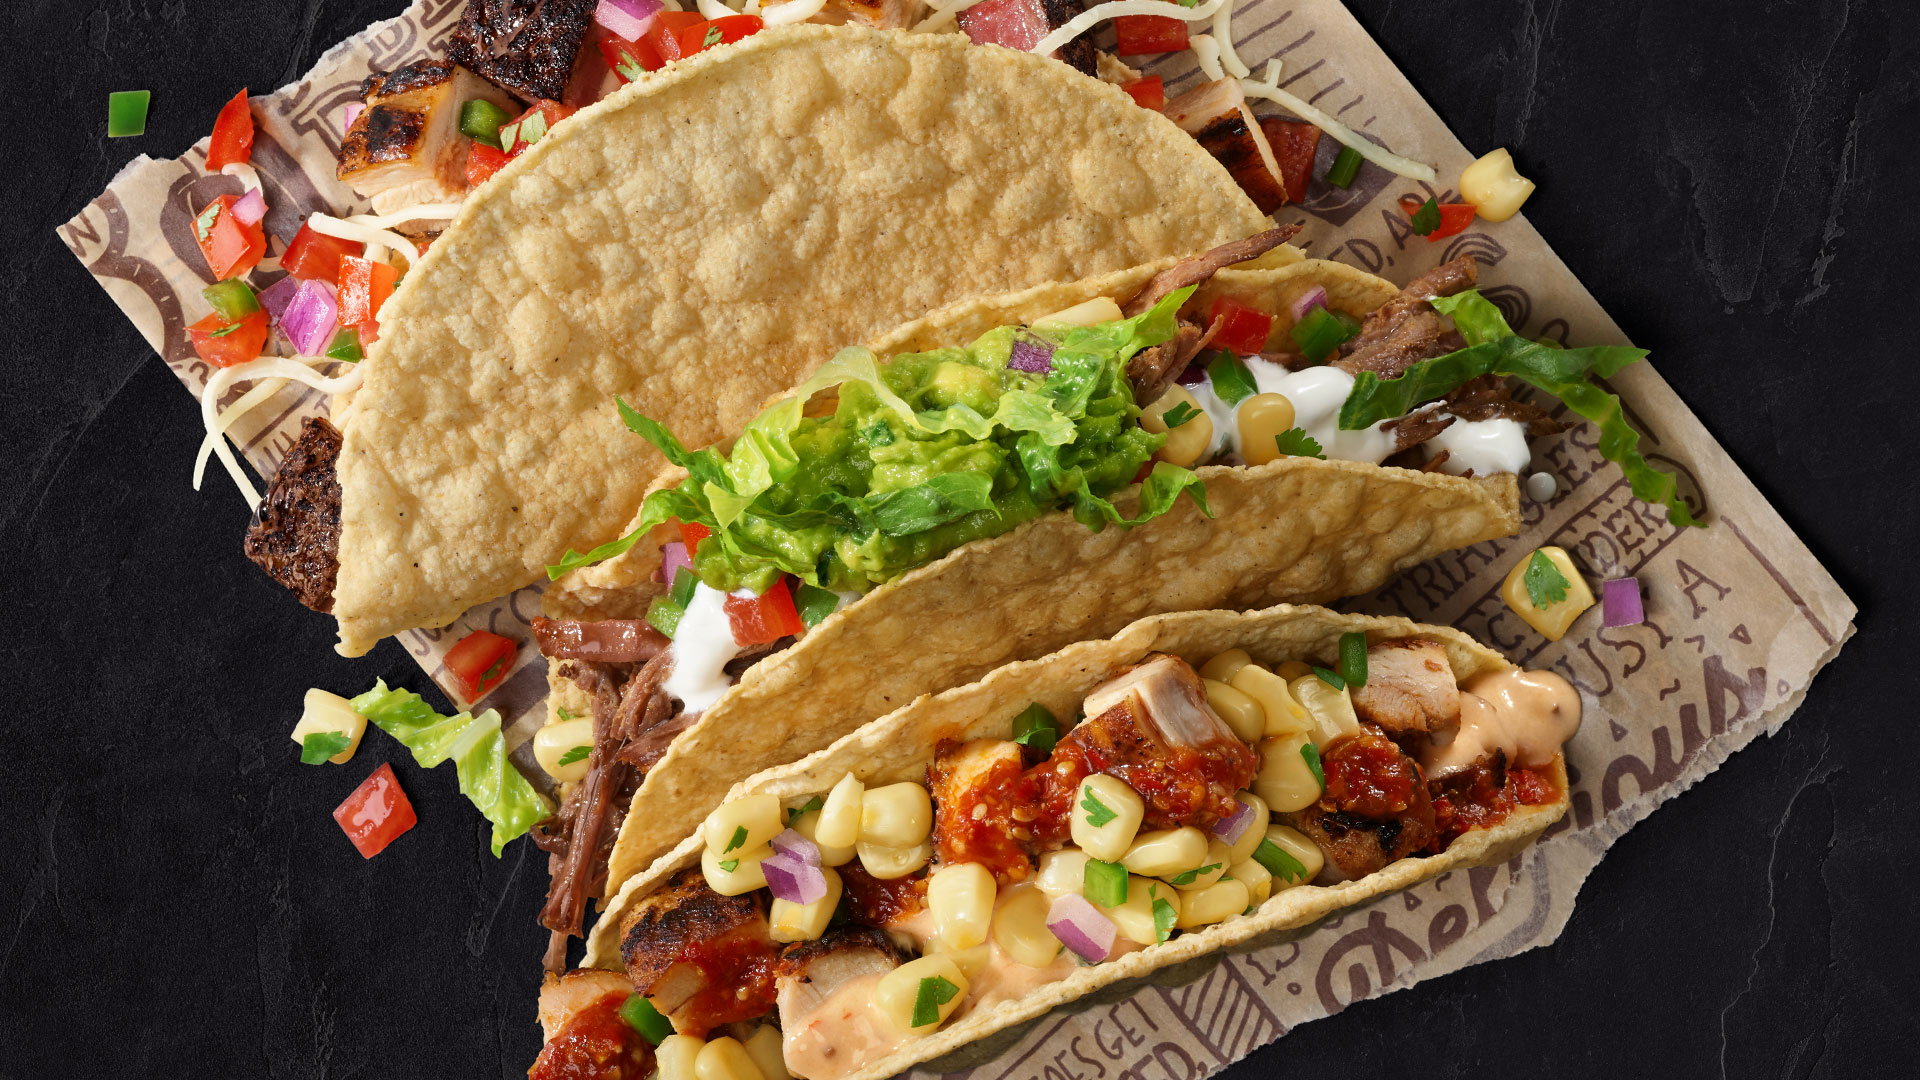 Chipotle_1920x1080_tacos